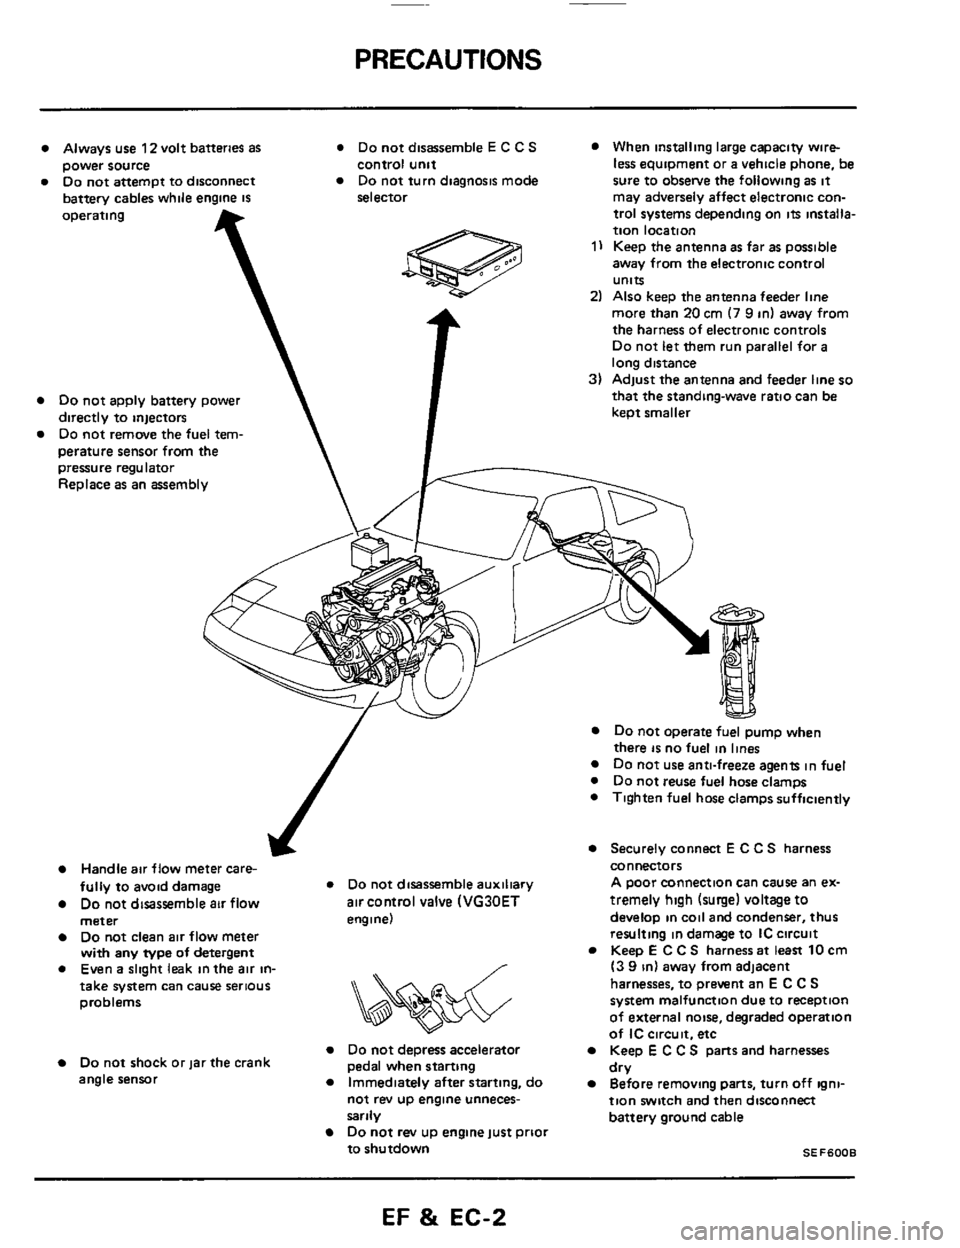 Nissan 300zx 1984 Z31 Engine Fuel And Emission Control System Injector Wiring Diagram Workshop Manual